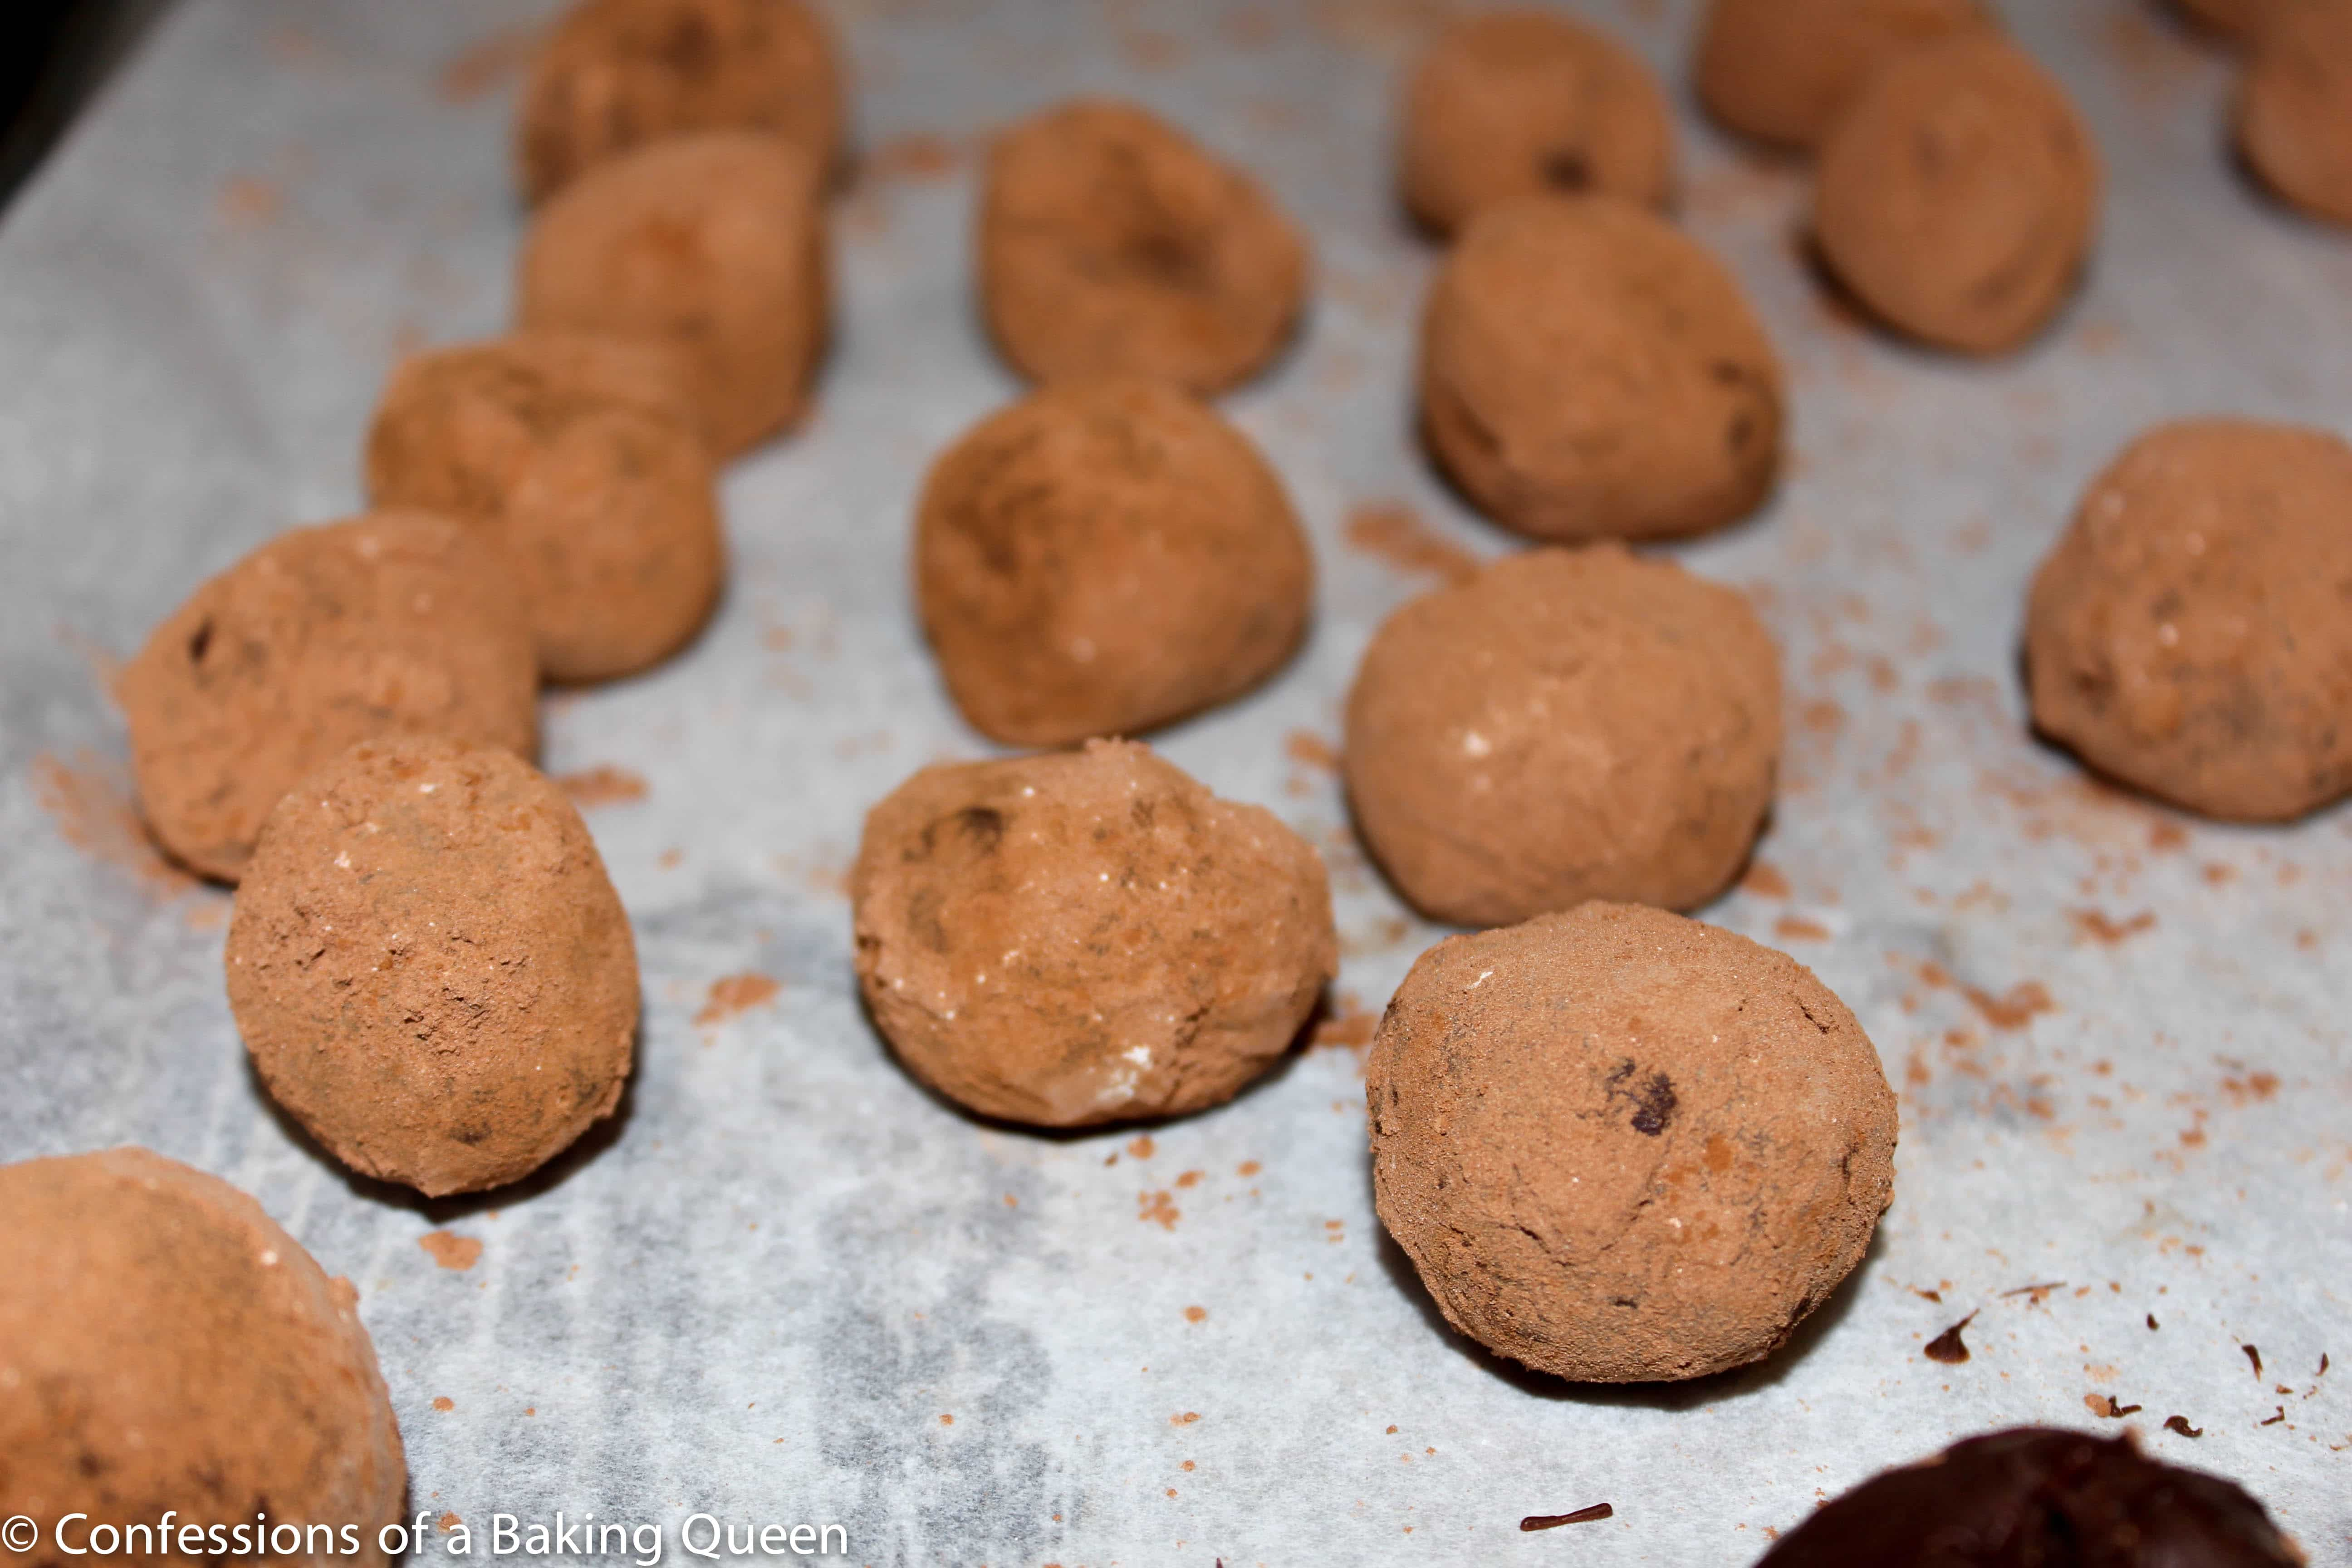 Bailey's Truffles rolled in cocoa powder on a baking sheet